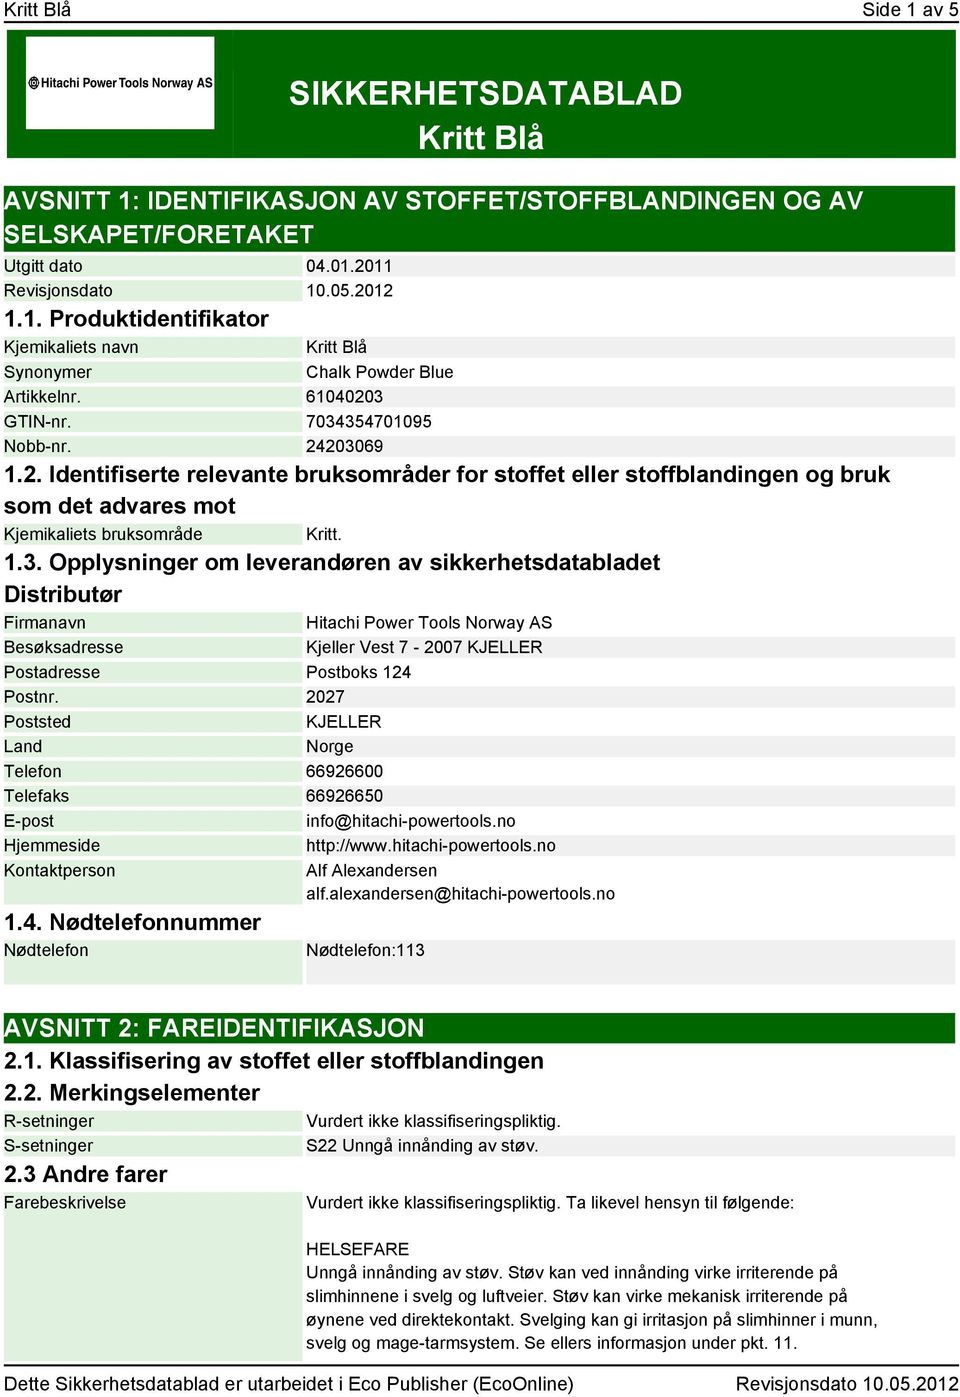 2027 Poststed KJELLER Land Norge Telefon 66926600 Telefaks 66926650 E-post info@hitachi-powertools.no Hjemmeside http://www.hitachi-powertools.no Kontaktperson Alf Alexandersen alf.